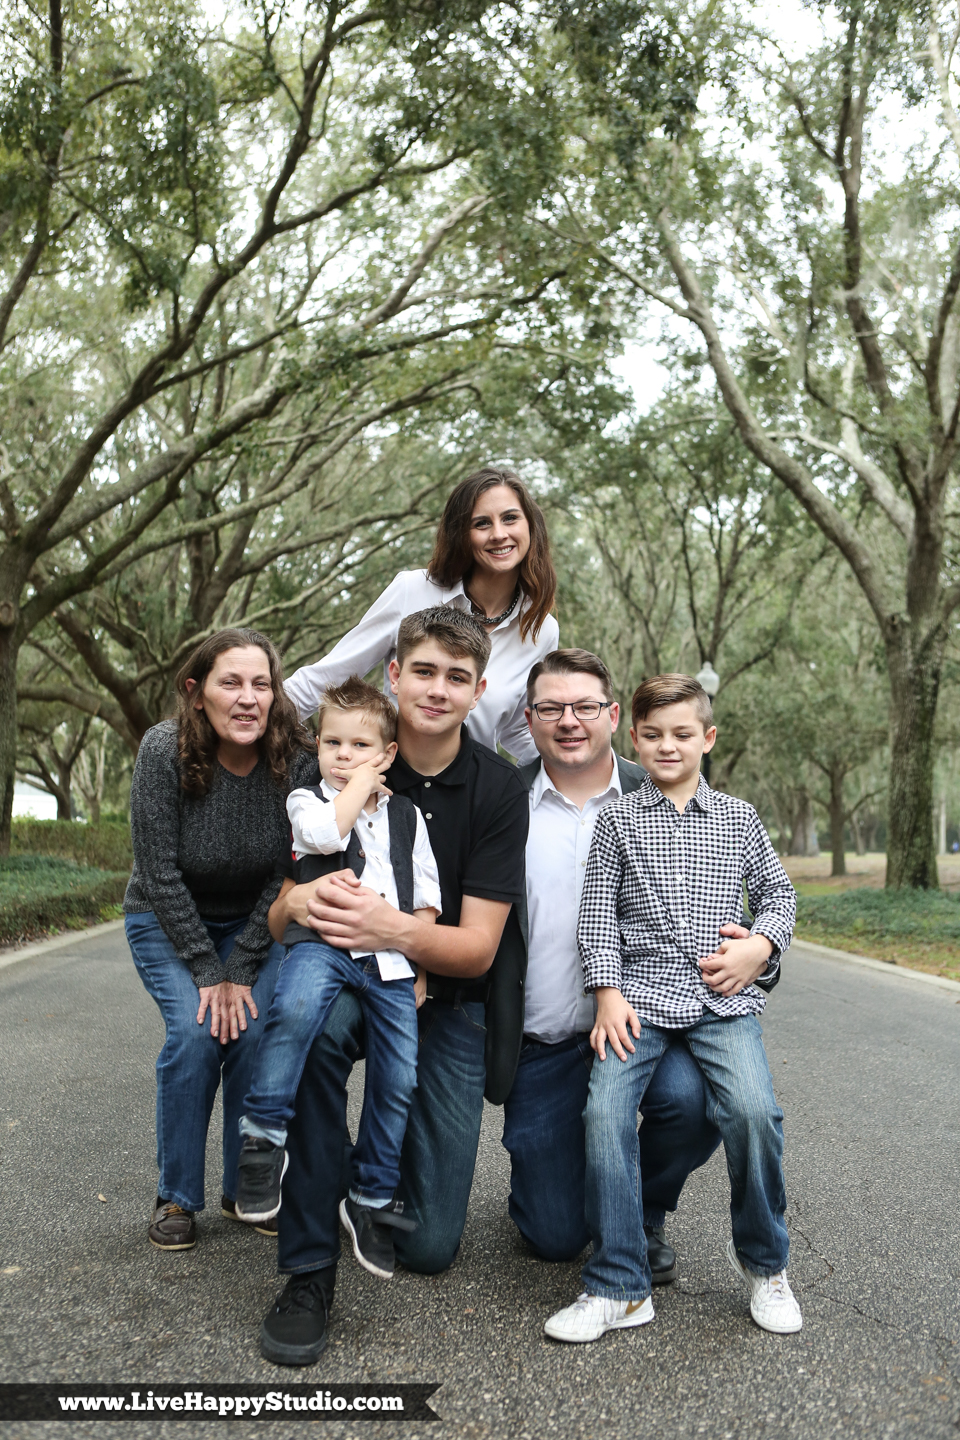 www.livehappystudio.com-family-session-photography-orlando--14.jpg